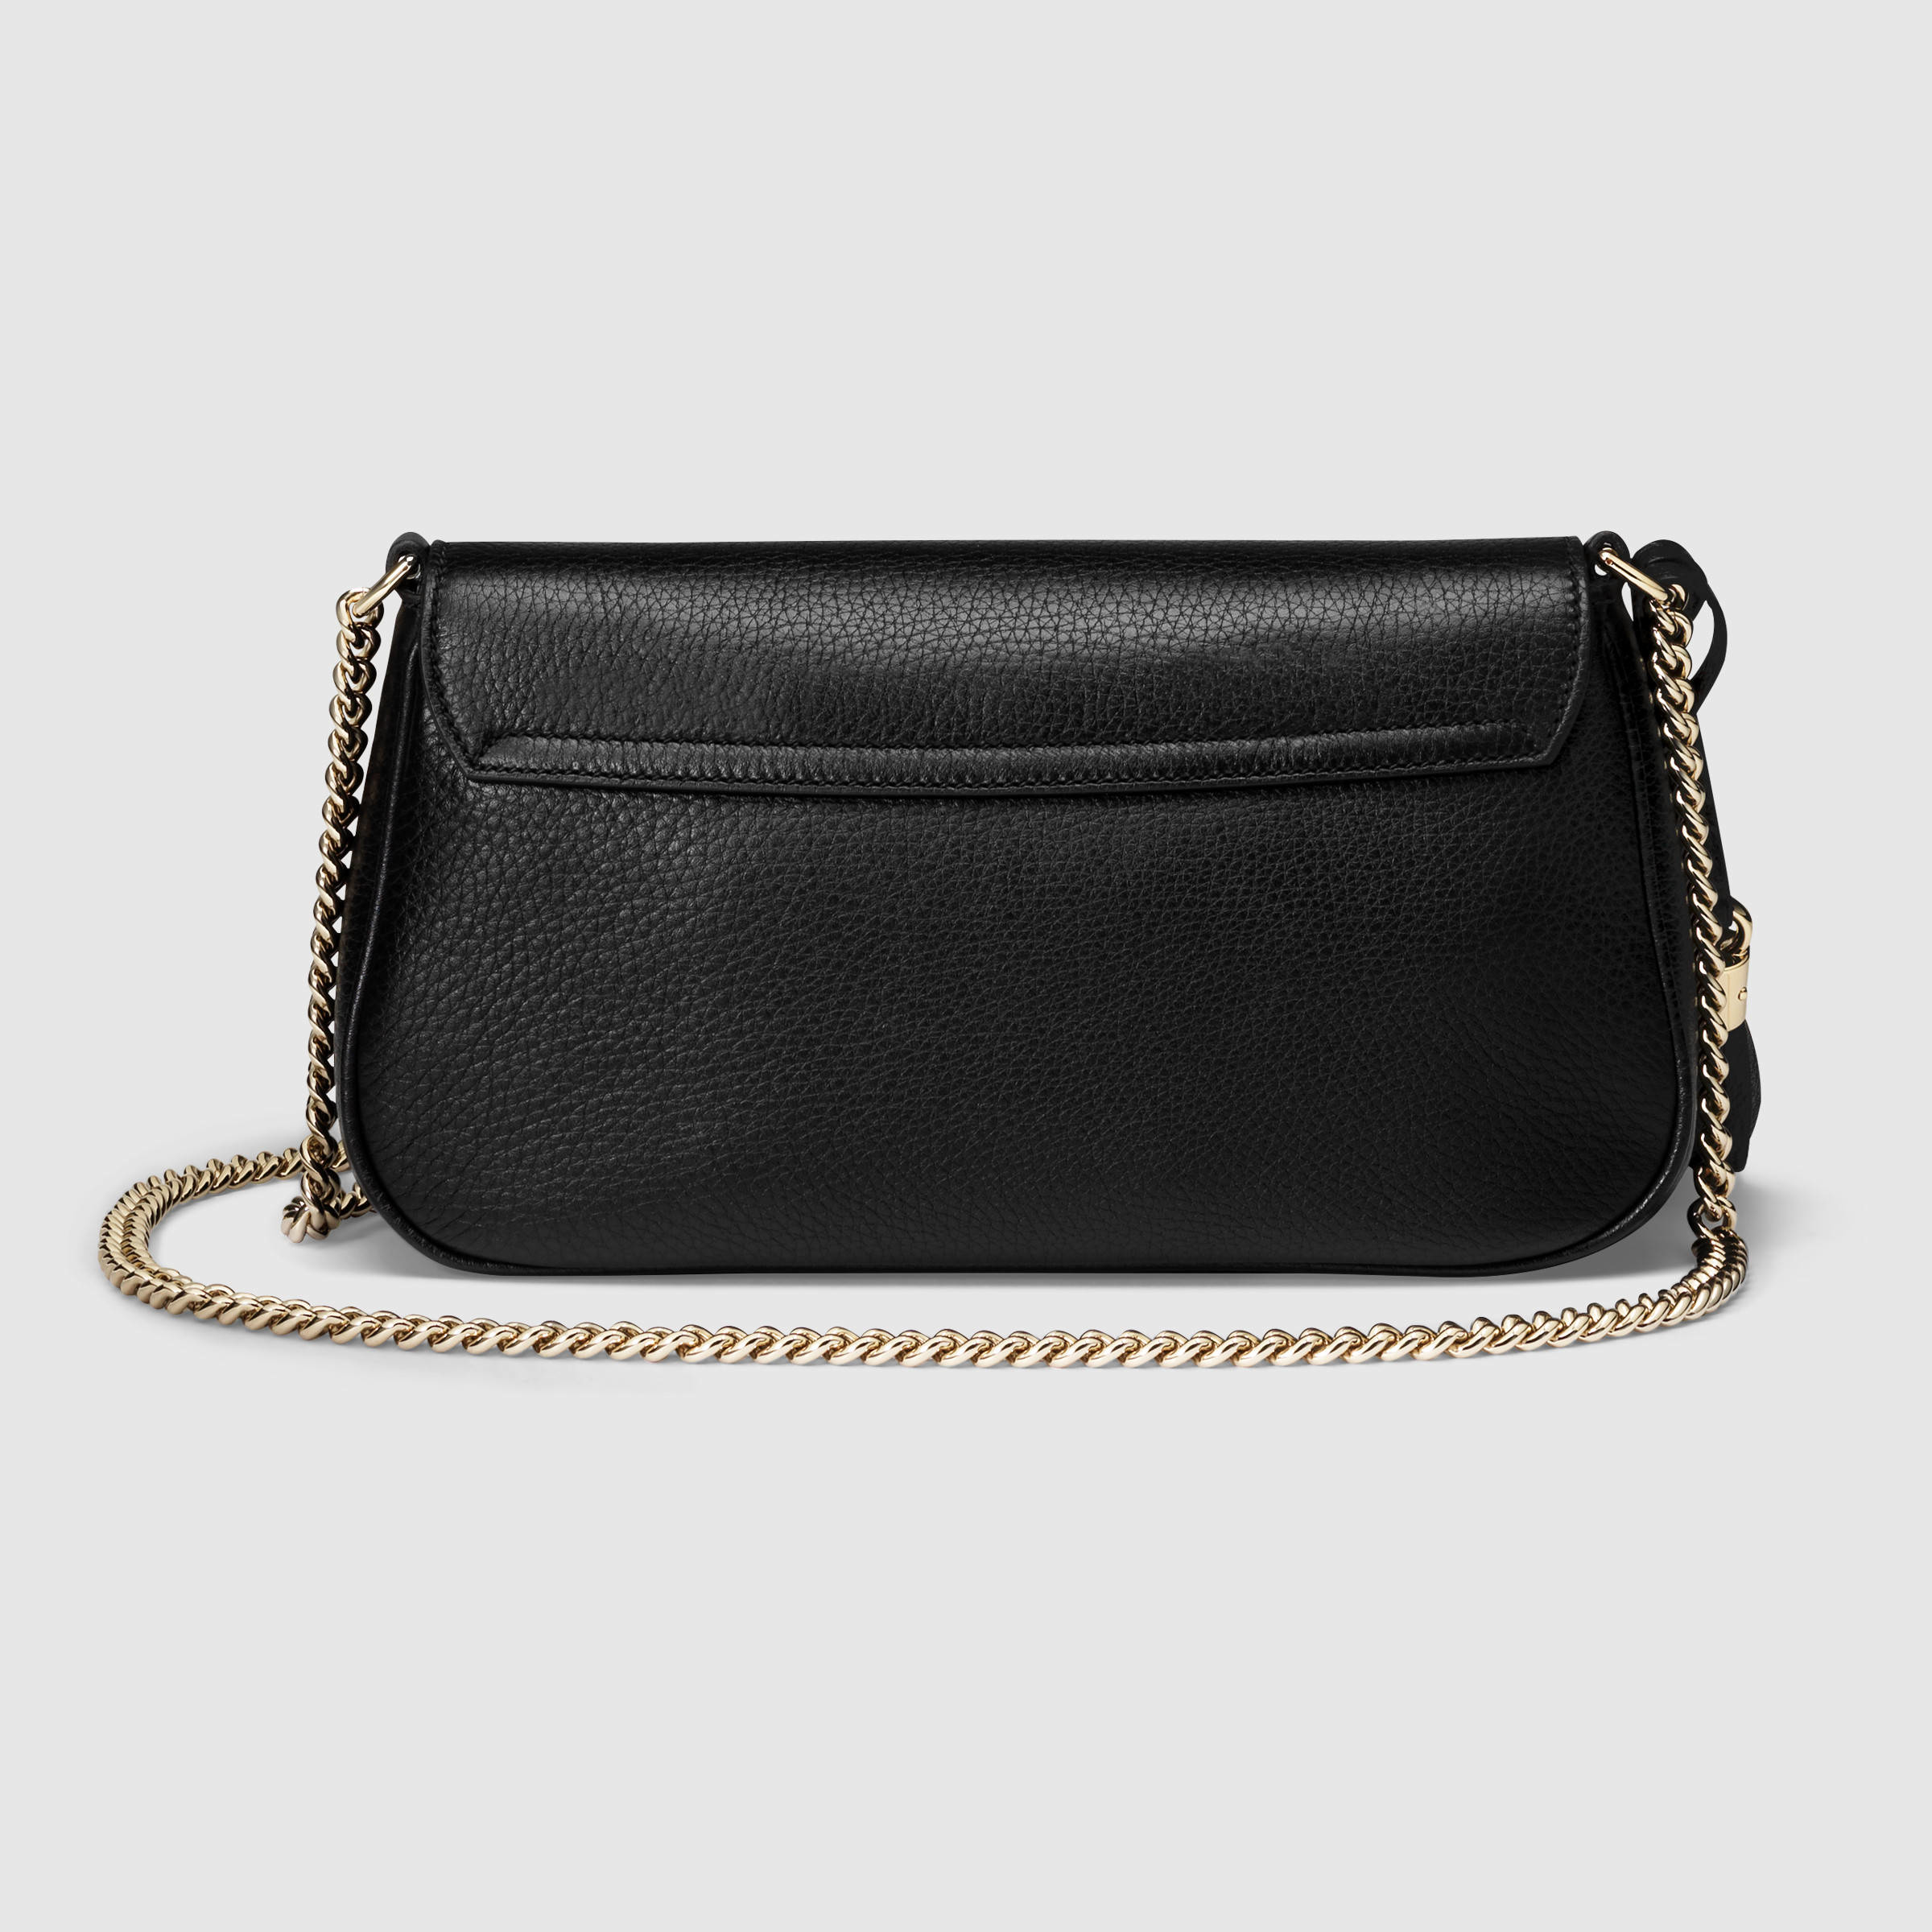 f76881f71323 Gucci Soho Leather Shoulder Bag in Black - Lyst